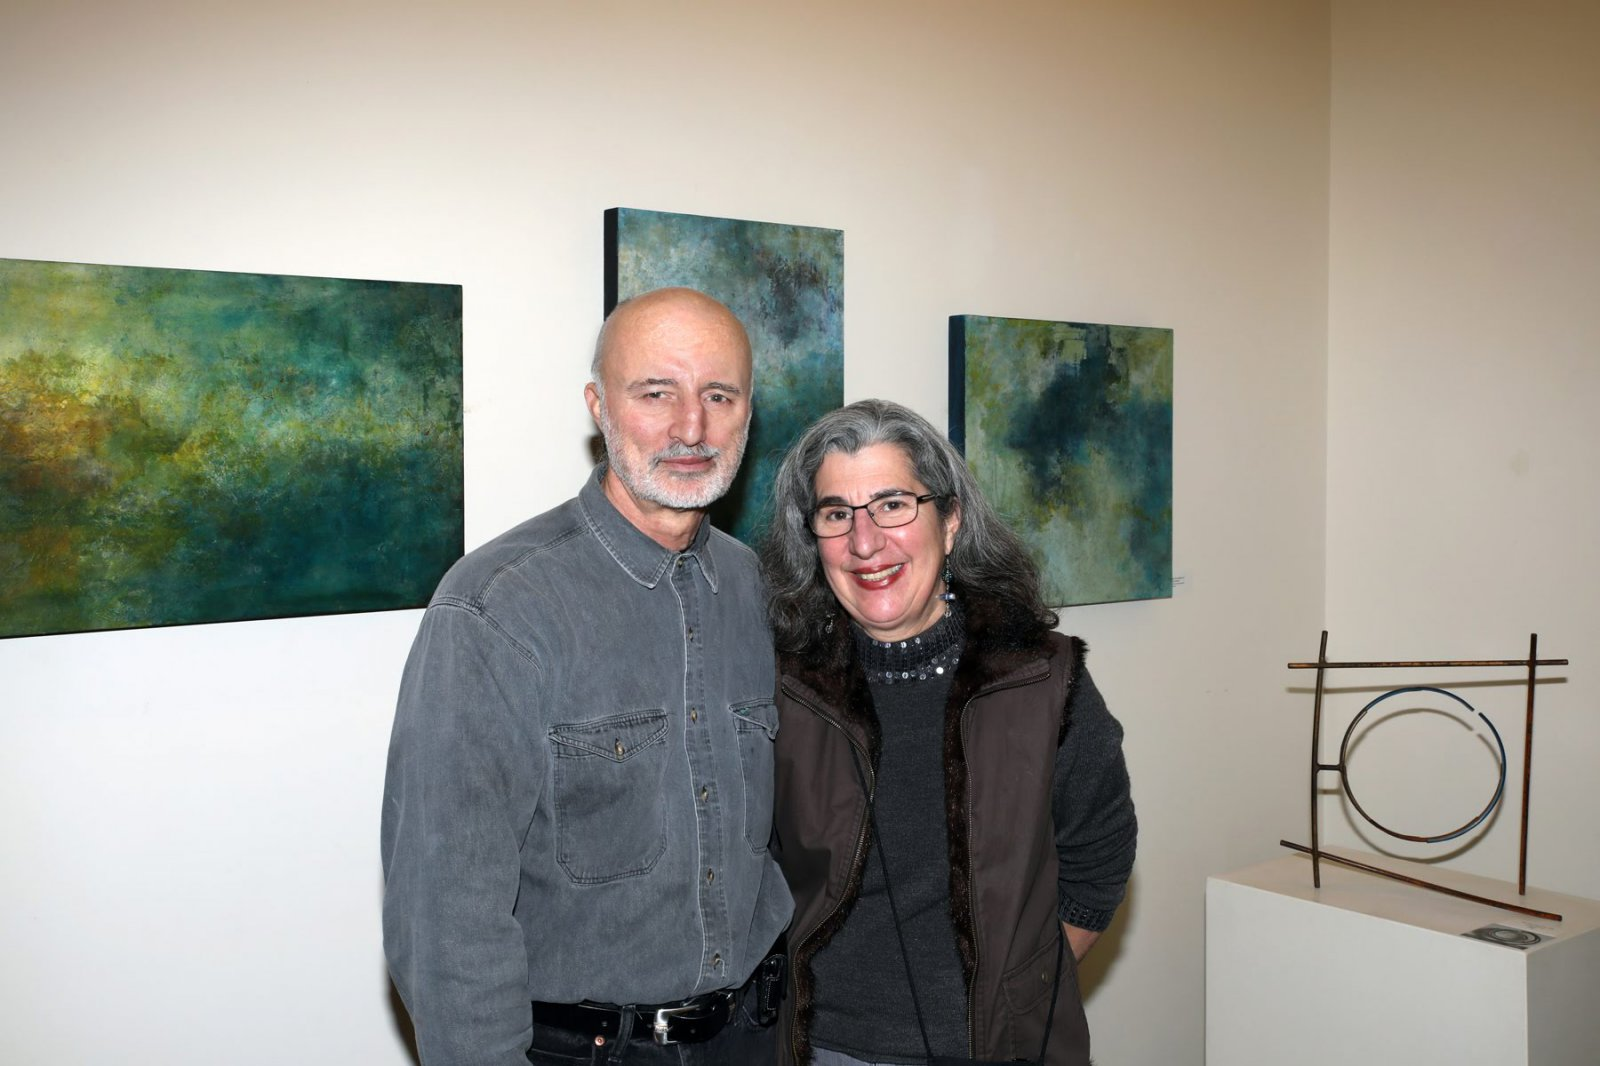 Ed and Beth Sahagian Allsopp, owners of Vanguard Sculpture Services